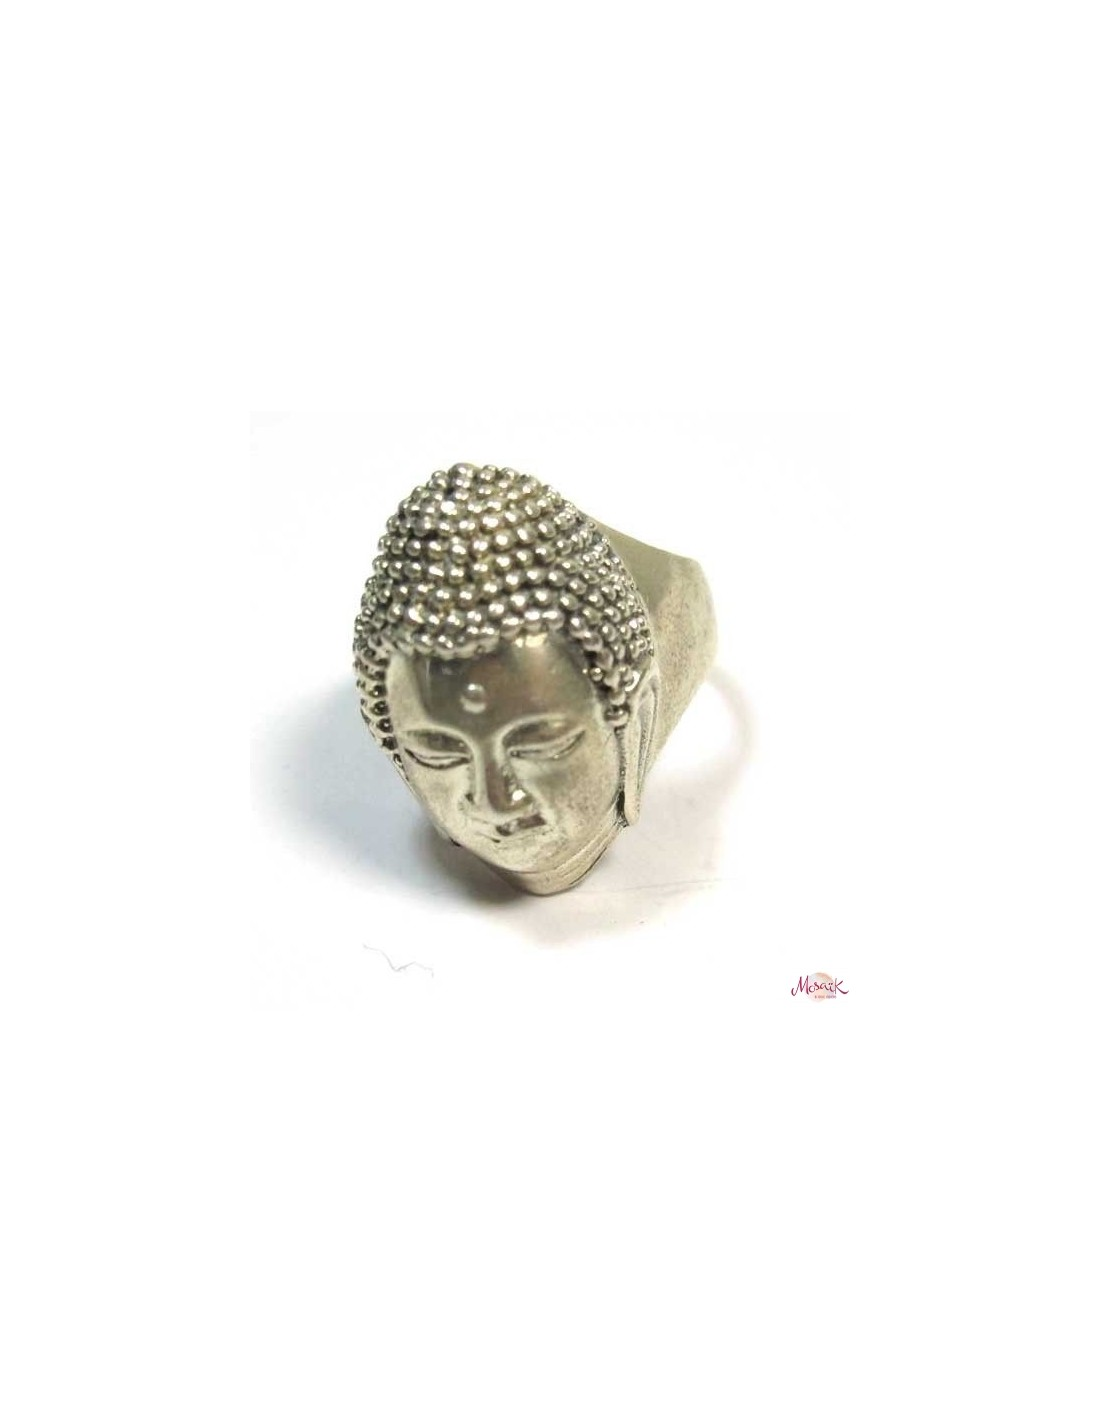 grosse bague argent t te de bouddha bijoux indiens spirituels ba62. Black Bedroom Furniture Sets. Home Design Ideas